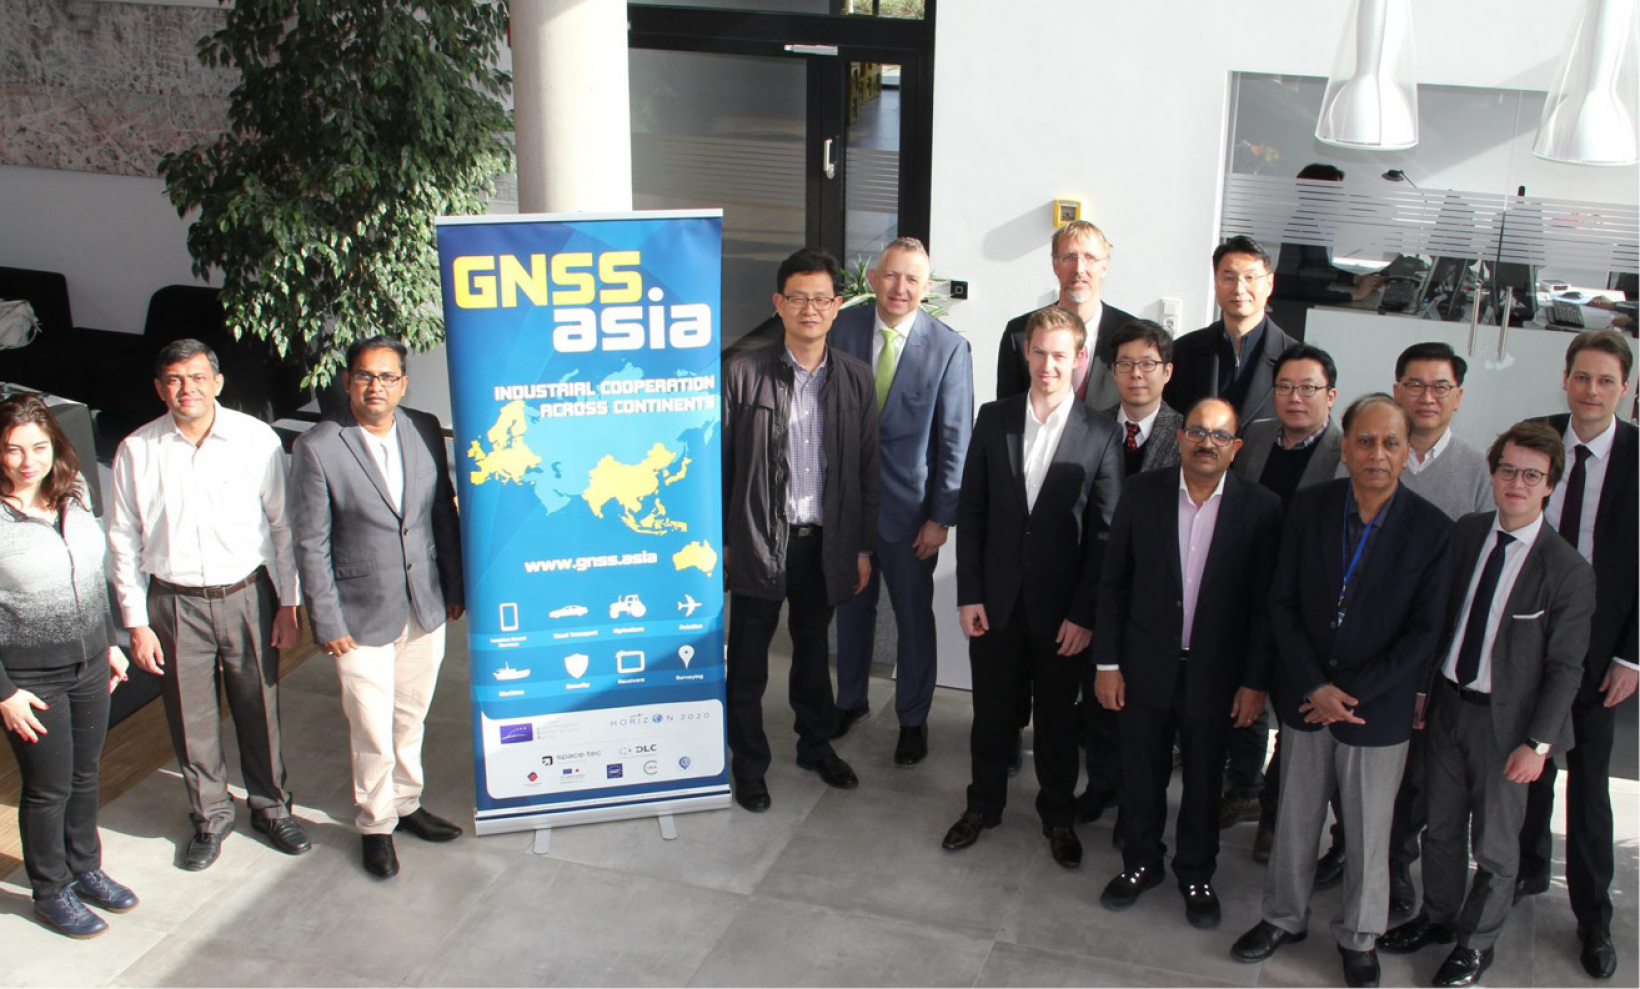 The GNSS.asia roundtable promoted cooperation between GNSS research and industrial communities in Europe and Asia-Pacific.